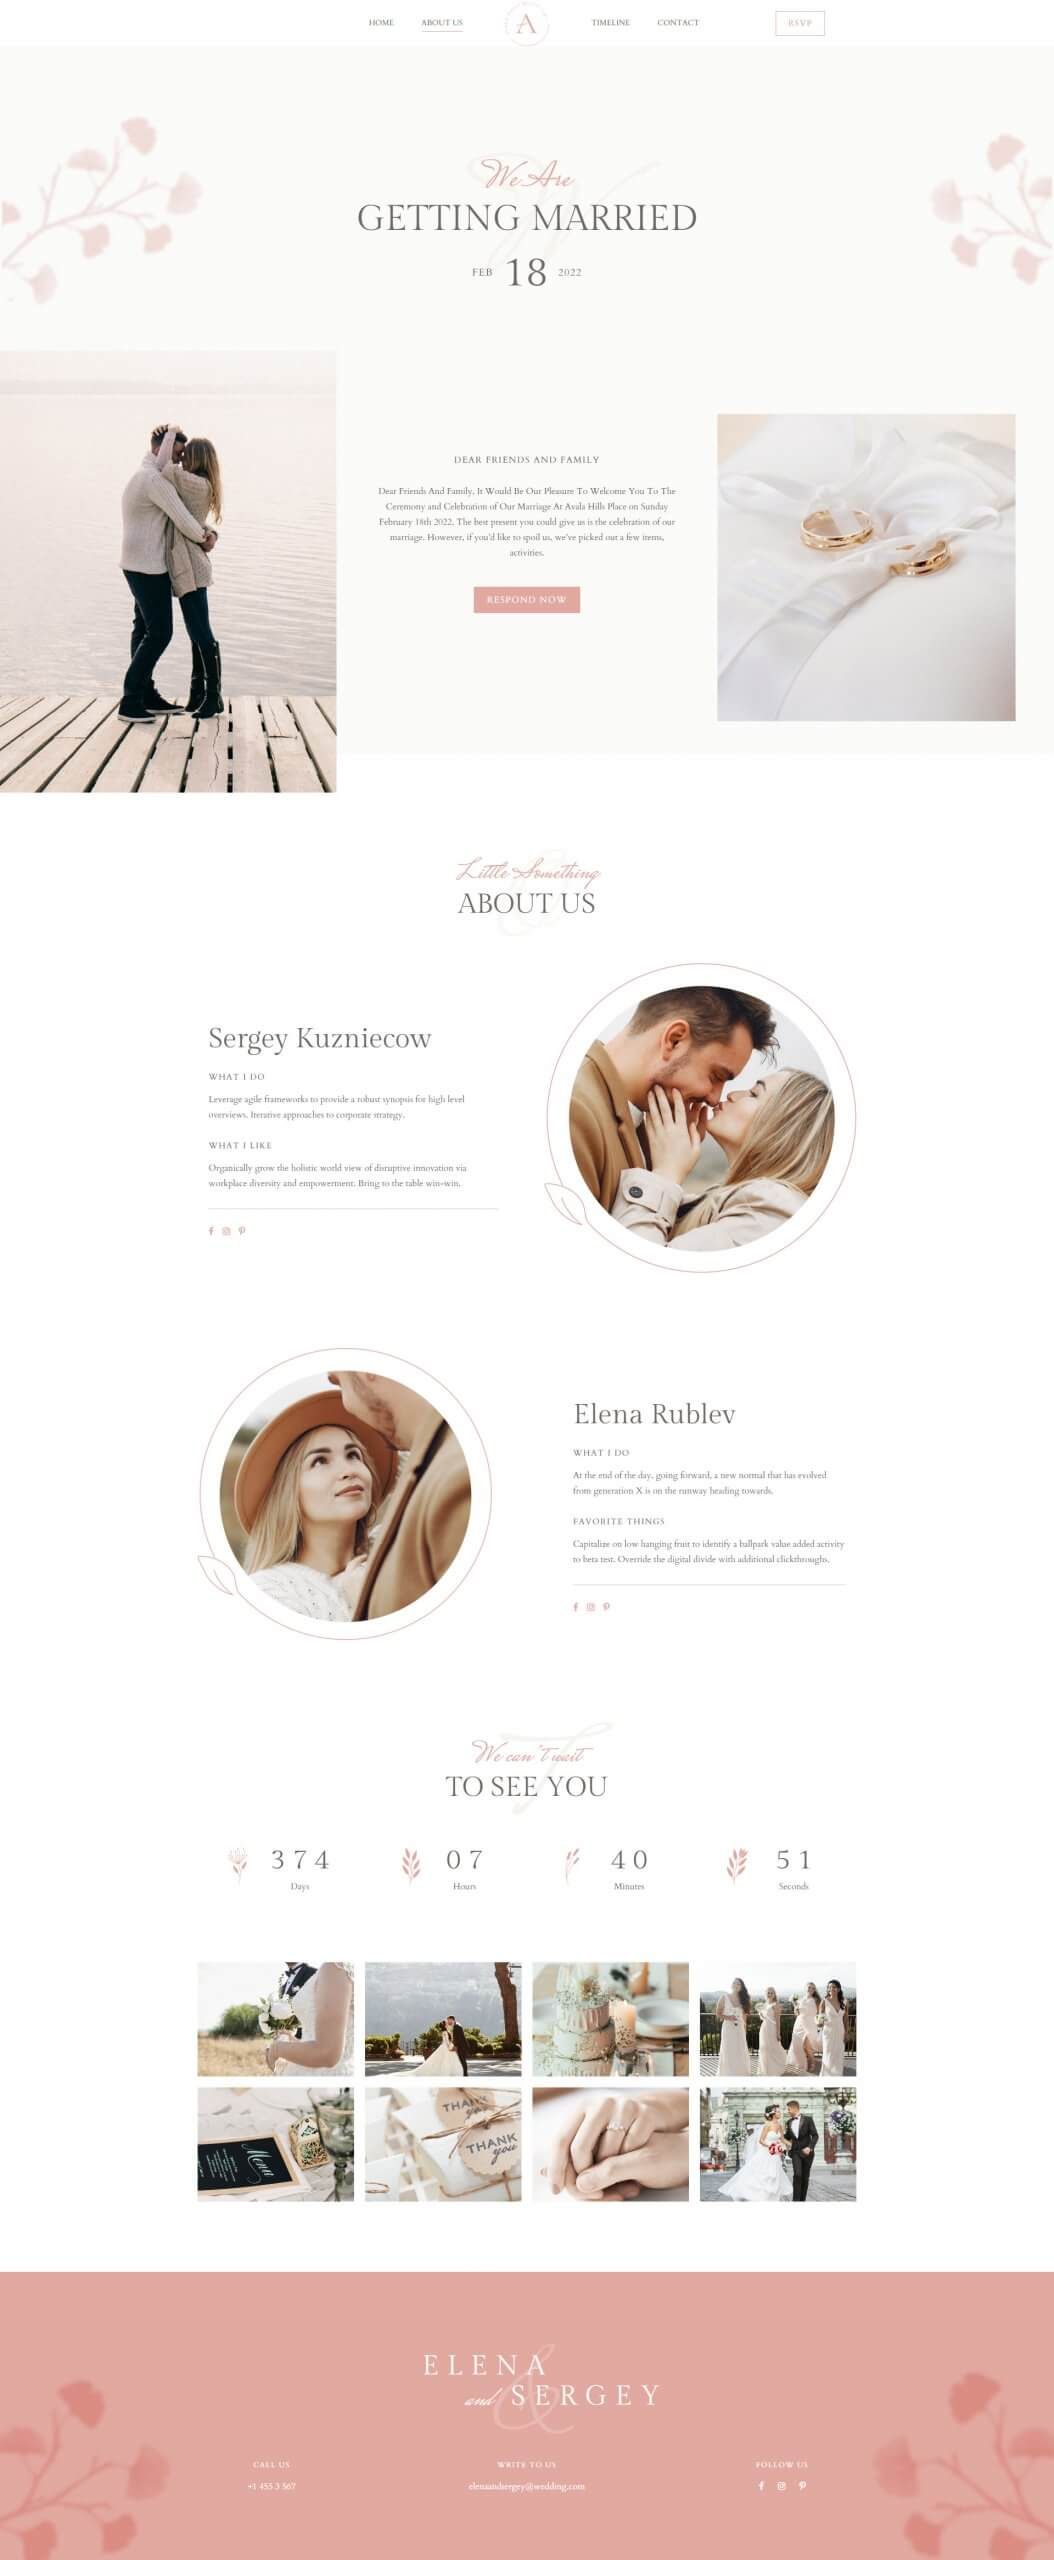 http://avala.bold-themes.com/wp-content/uploads/2021/02/Winter-About-Us-Couples-scaled.jpg